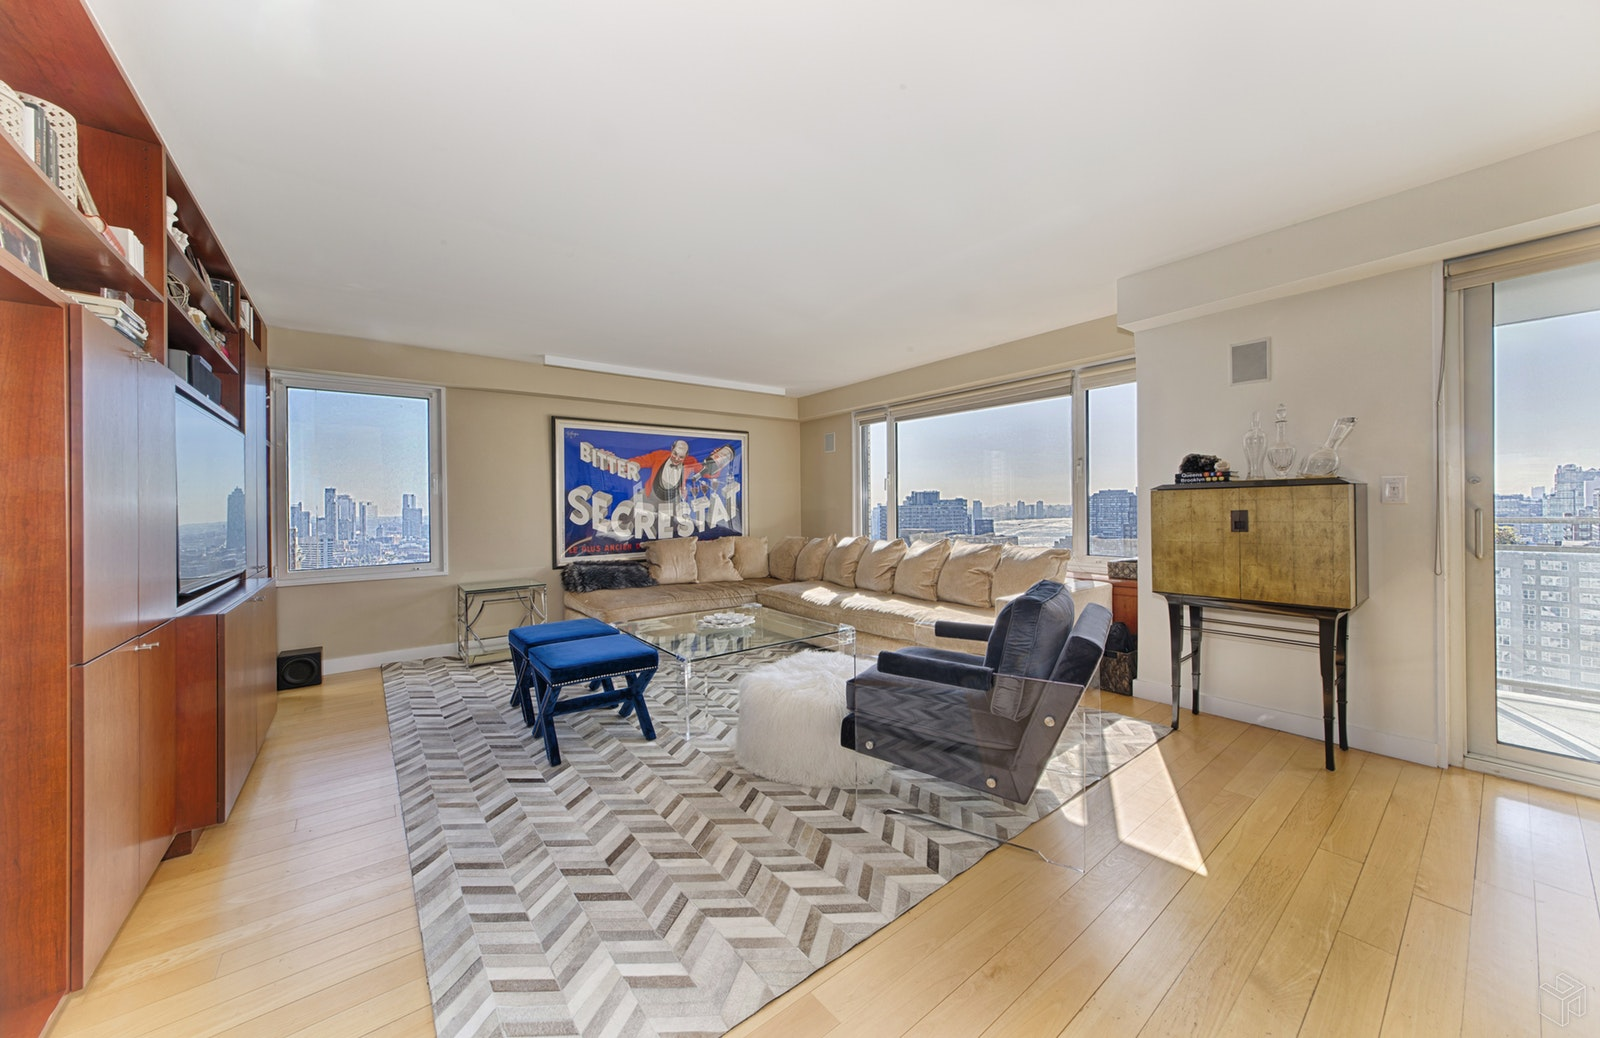 303 East 57th Street 34g, Midtown East, NYC, 10022, $2,500,000, Property For Sale, Halstead Real Estate, Photo 11